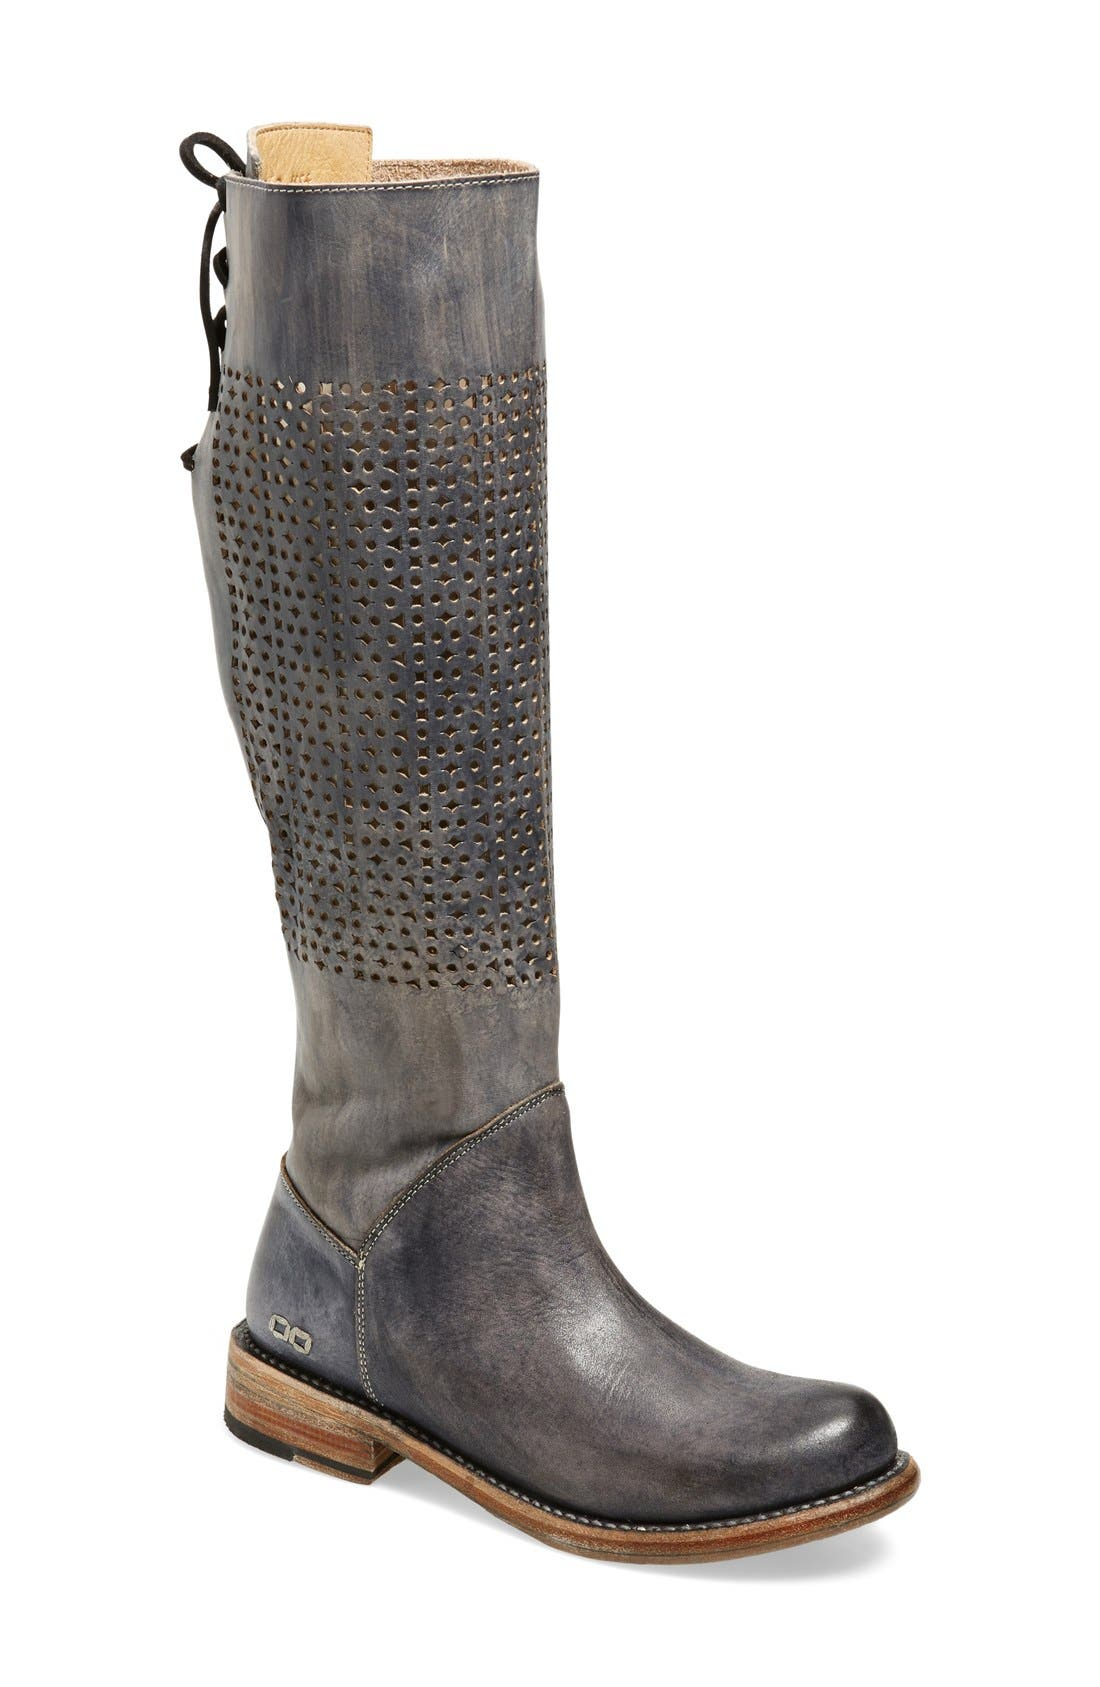 Alternate Image 1 Selected - Bed Stu 'Cambridge' Knee High Leather Boot (Women)